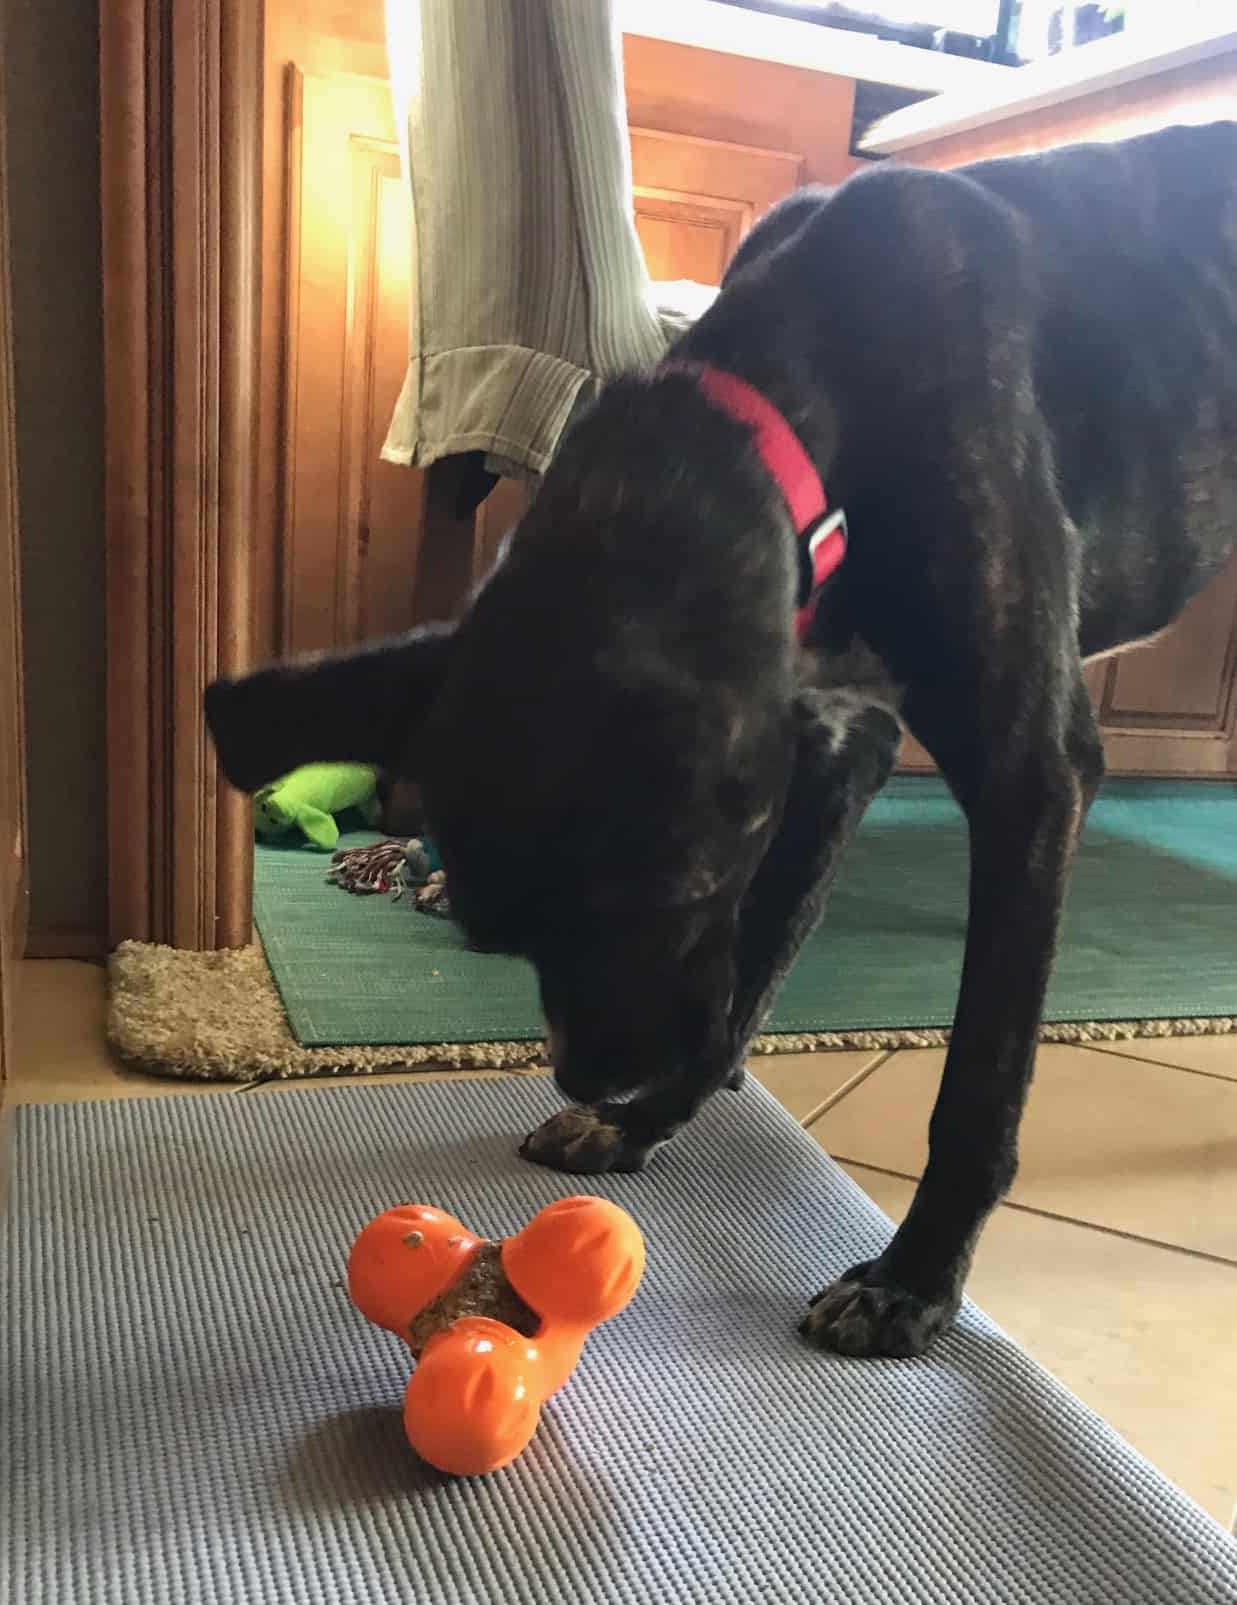 Puppy eating food from a toy inside